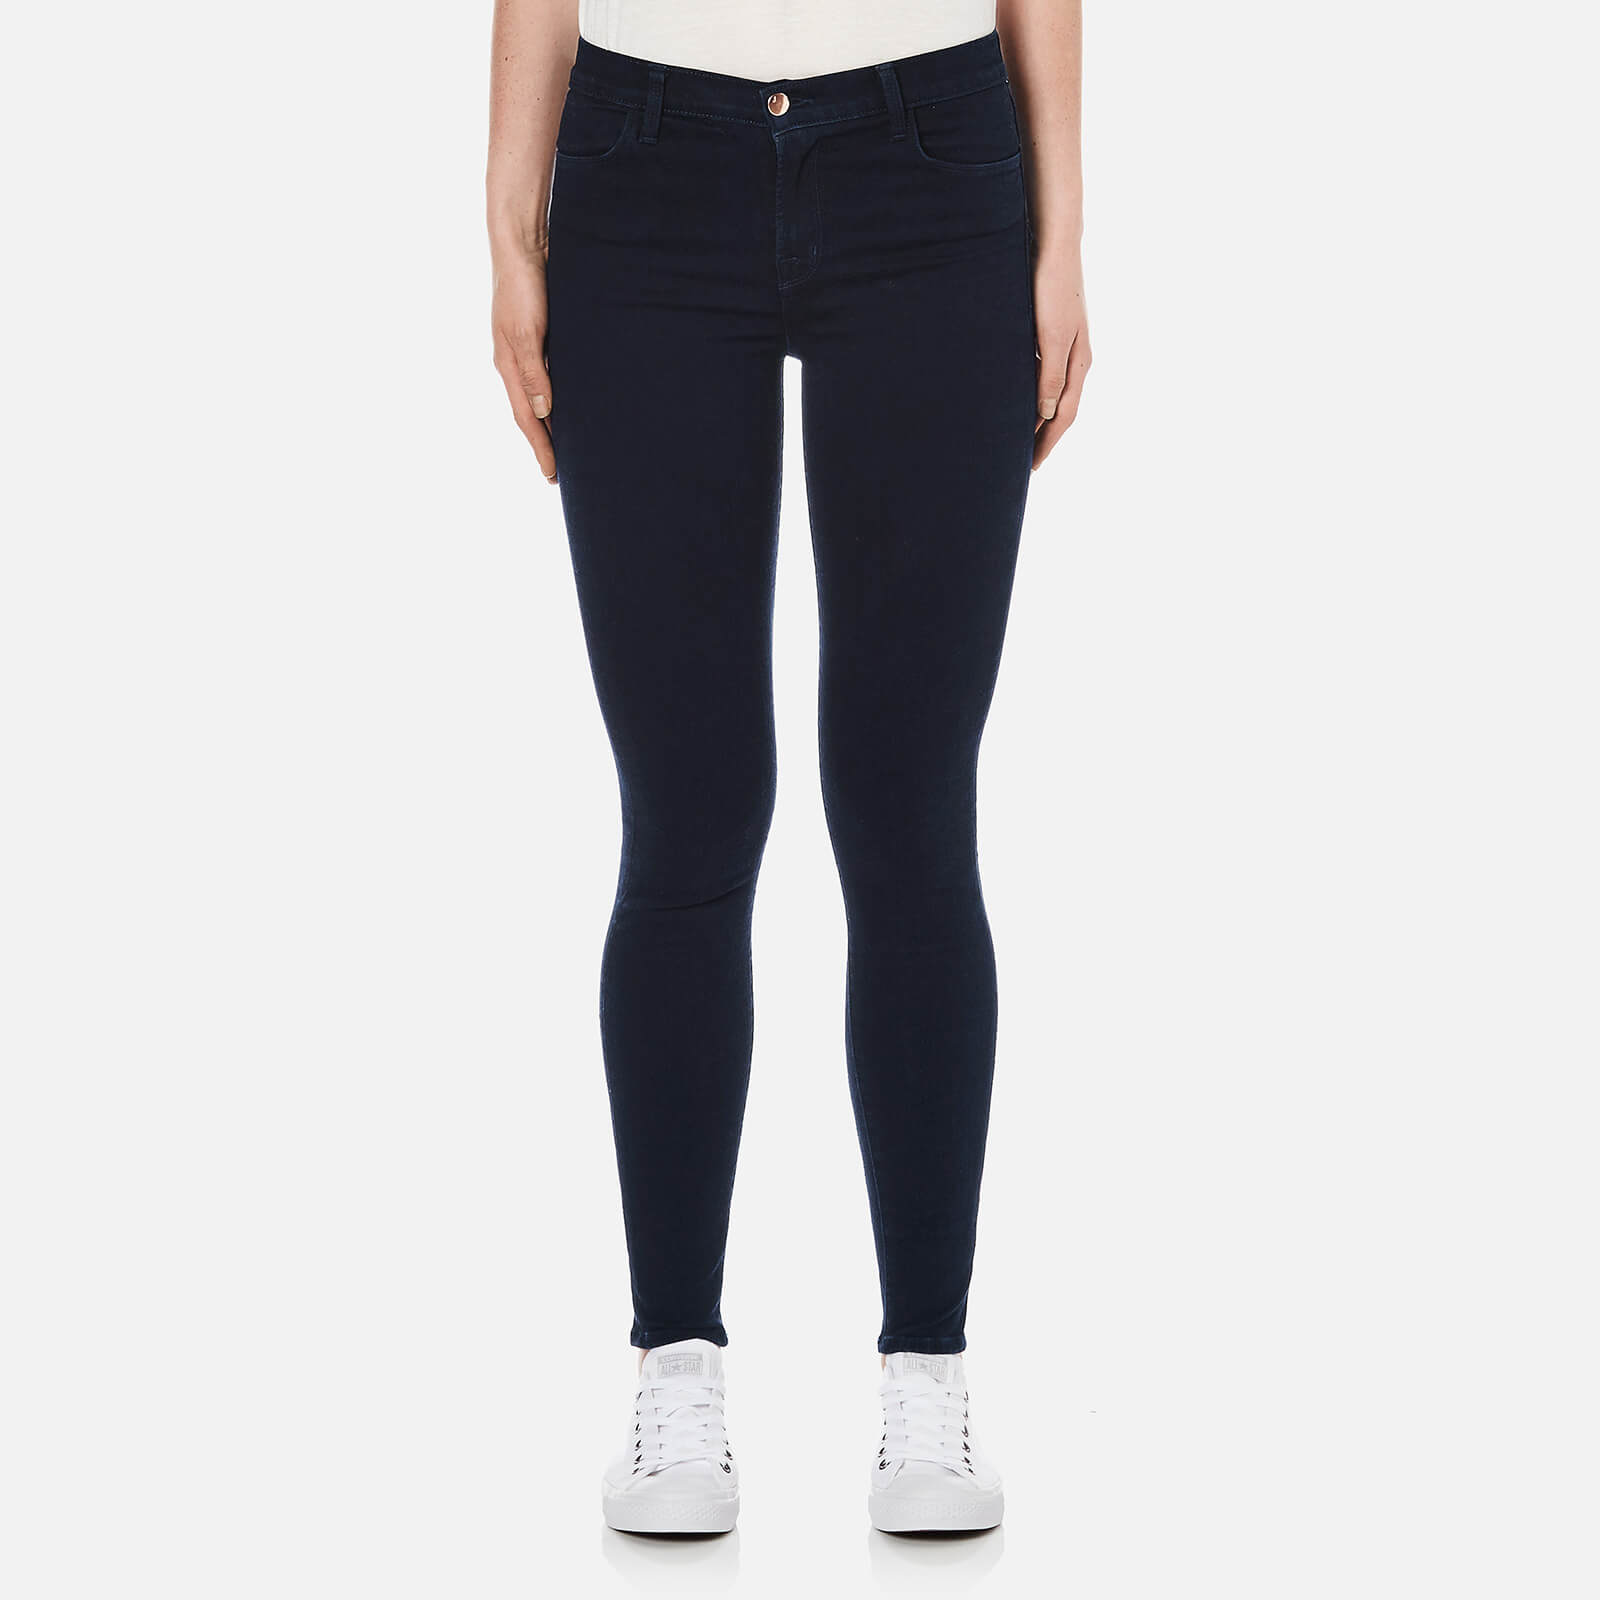 aeea1bb75a8e J Brand Women s Maria High Rise Skinny Jeans - Bluebird - Free UK Delivery  over £50